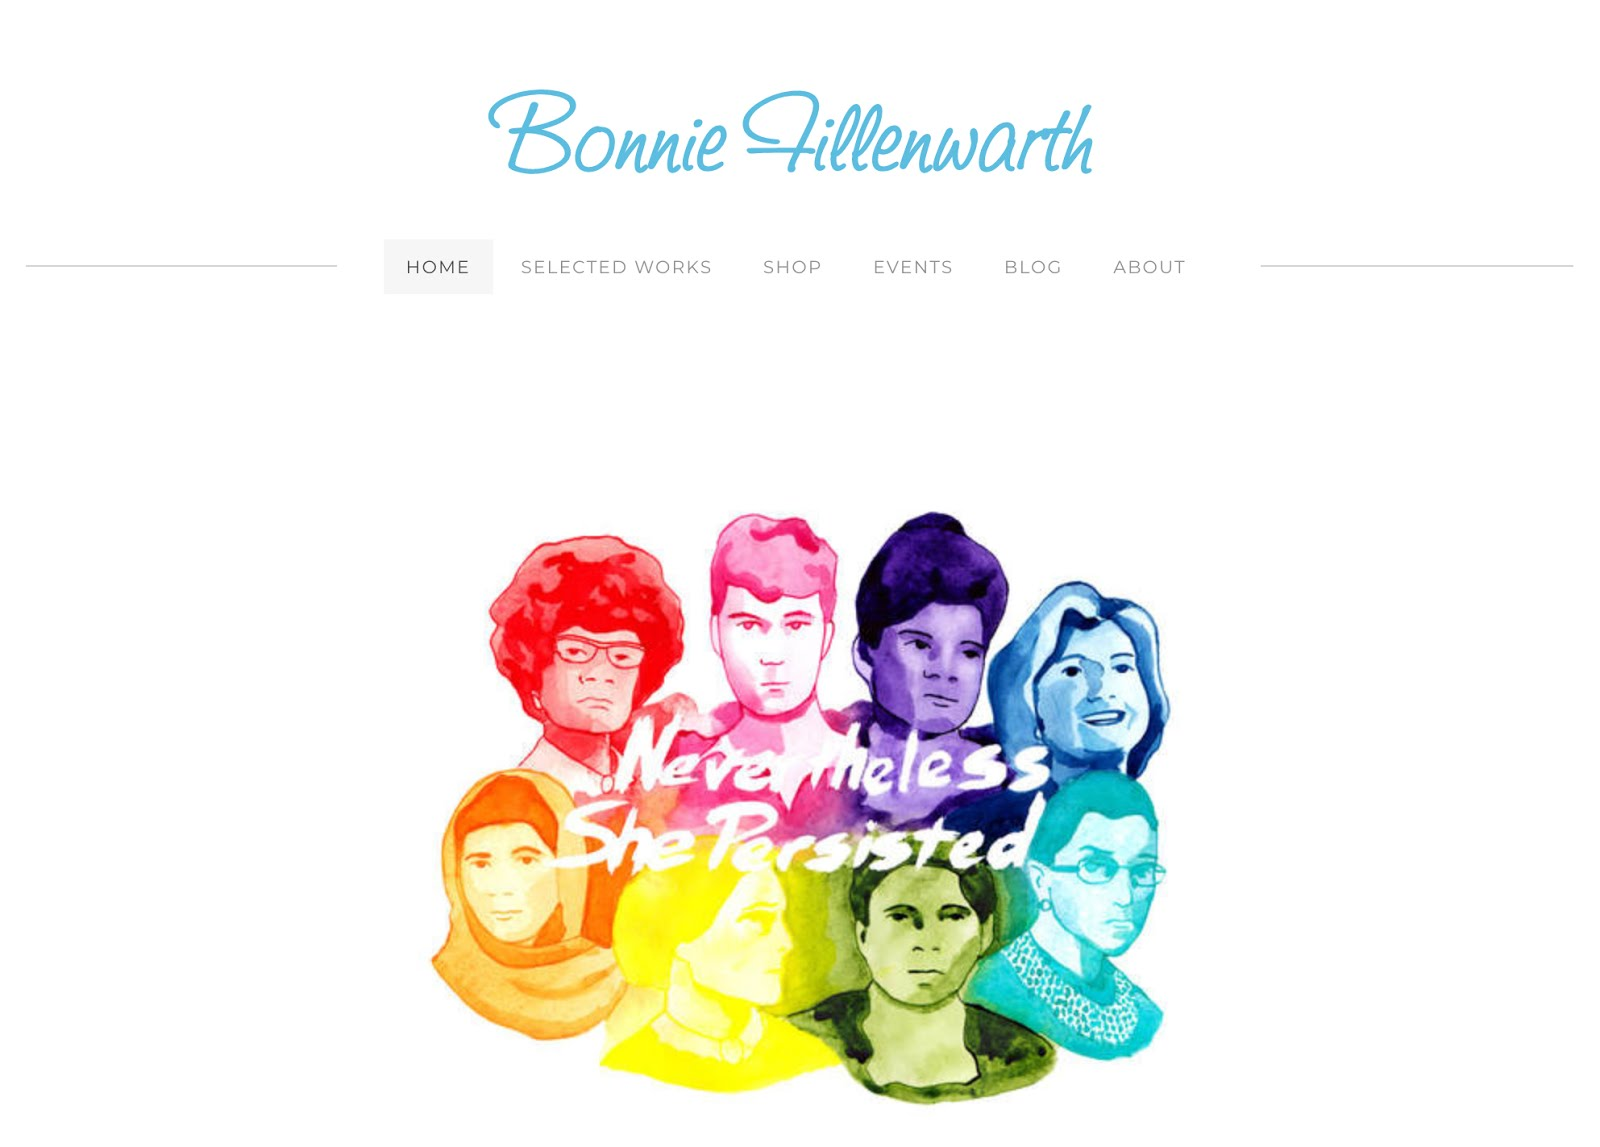 bonniefillenwarth.com